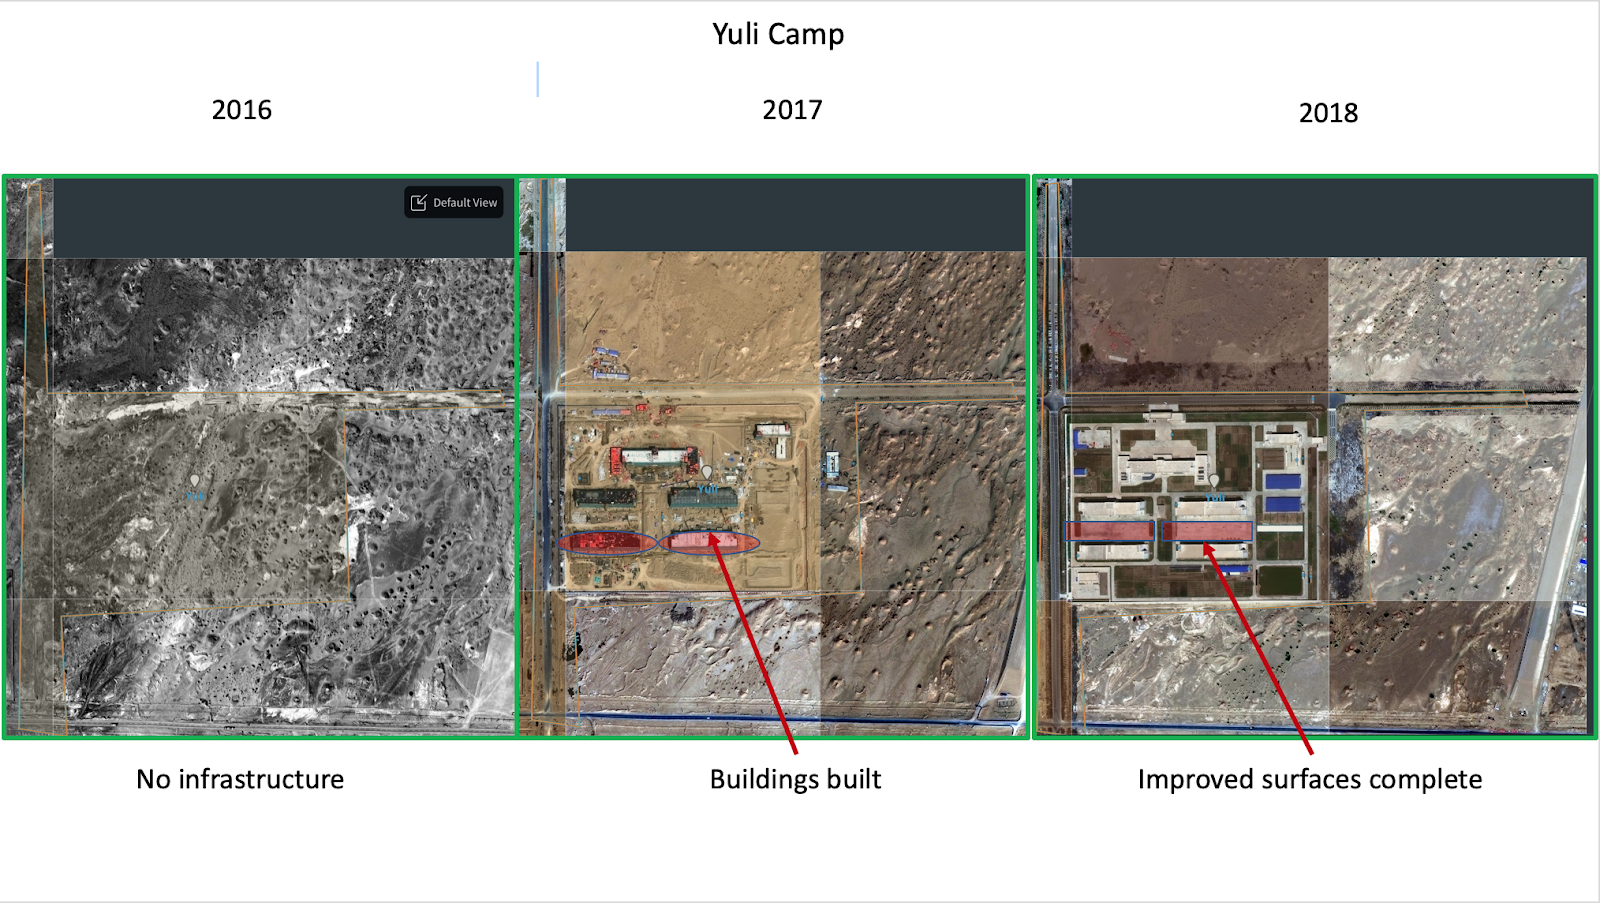 Yuli re-education camp